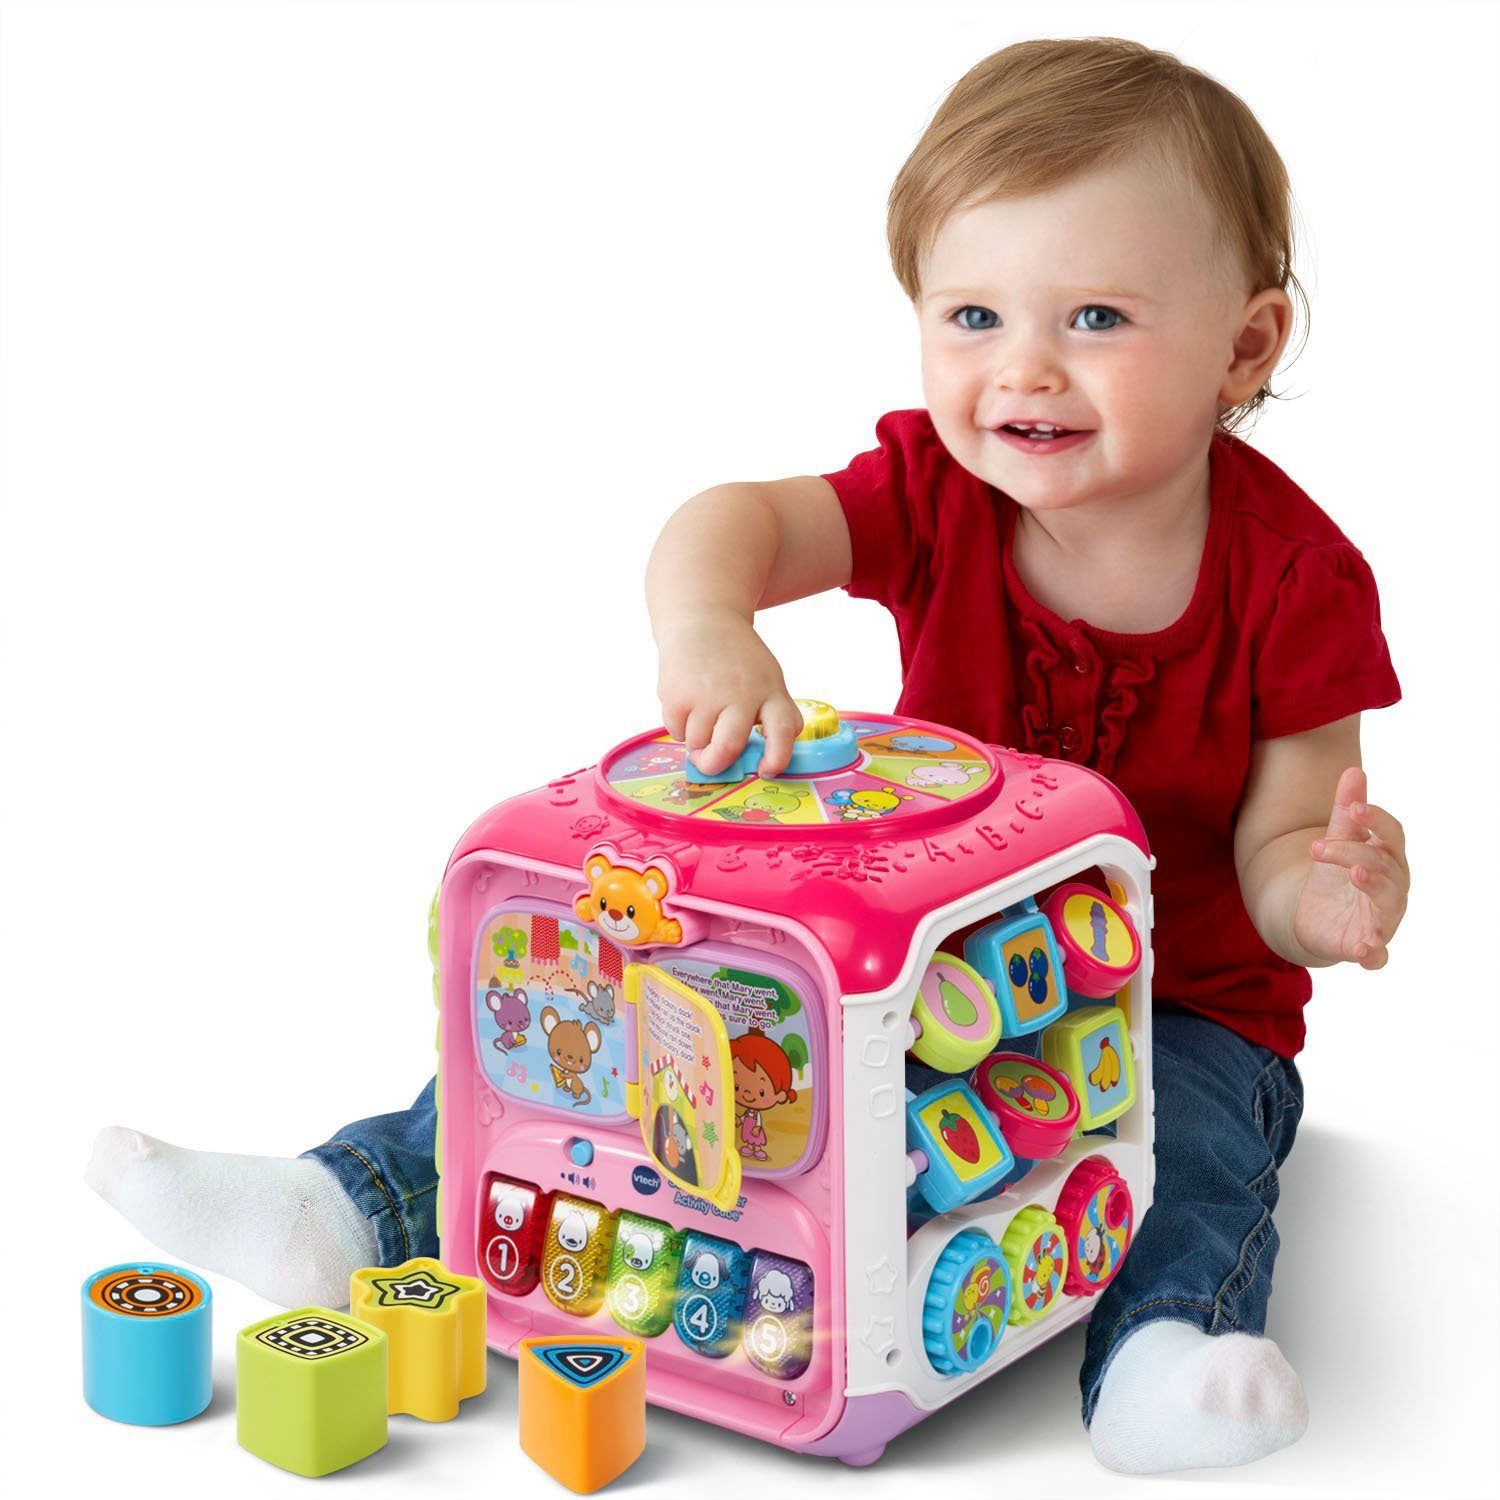 VTech Sort & Discover Activity Cube, Pink